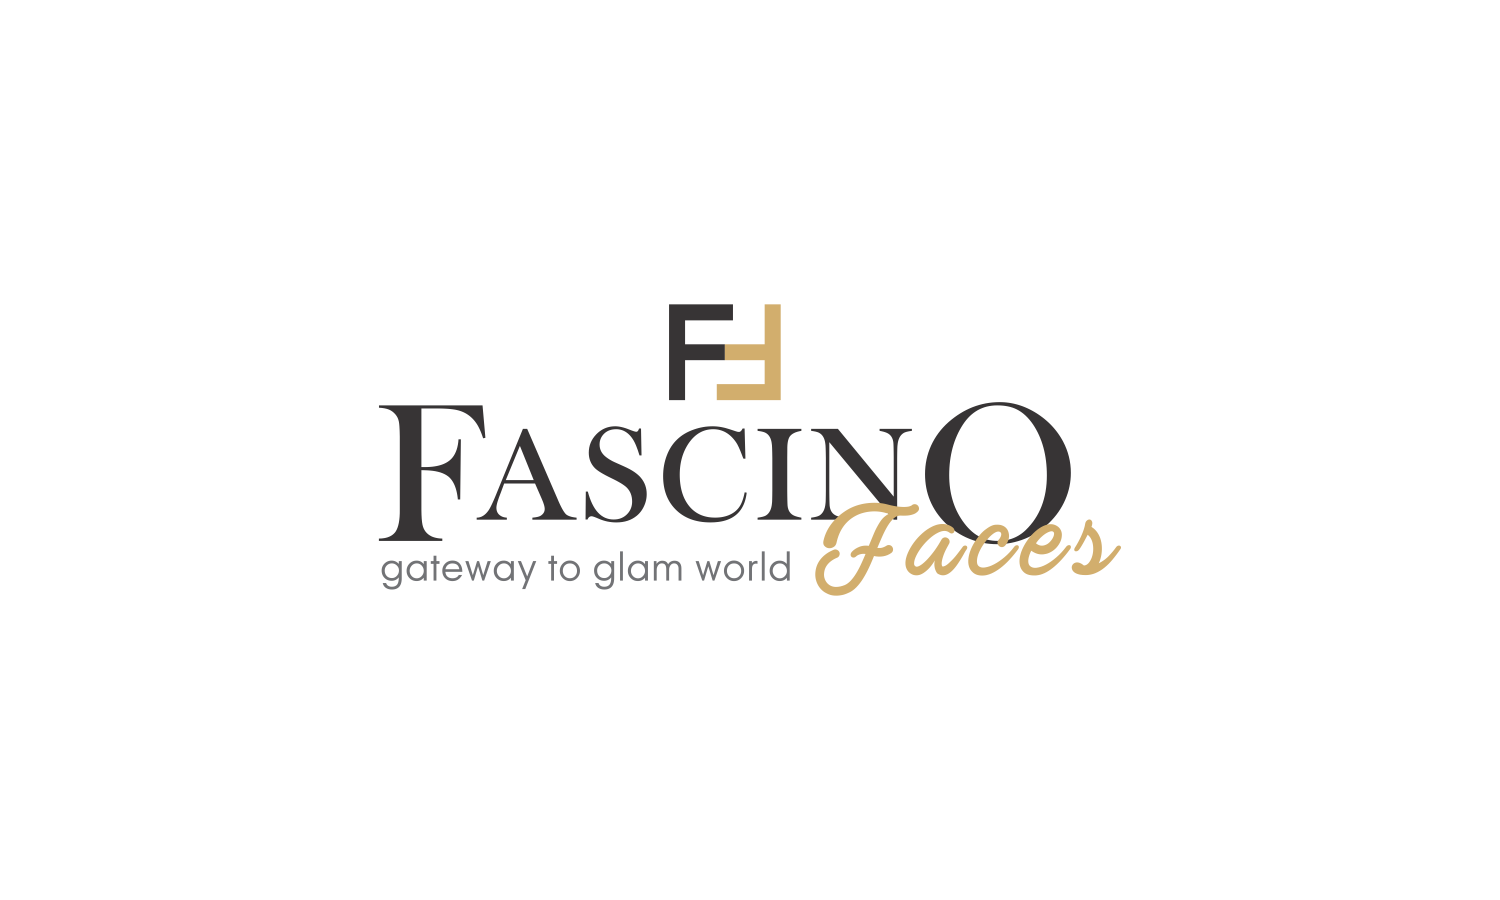 Final Facino Logo